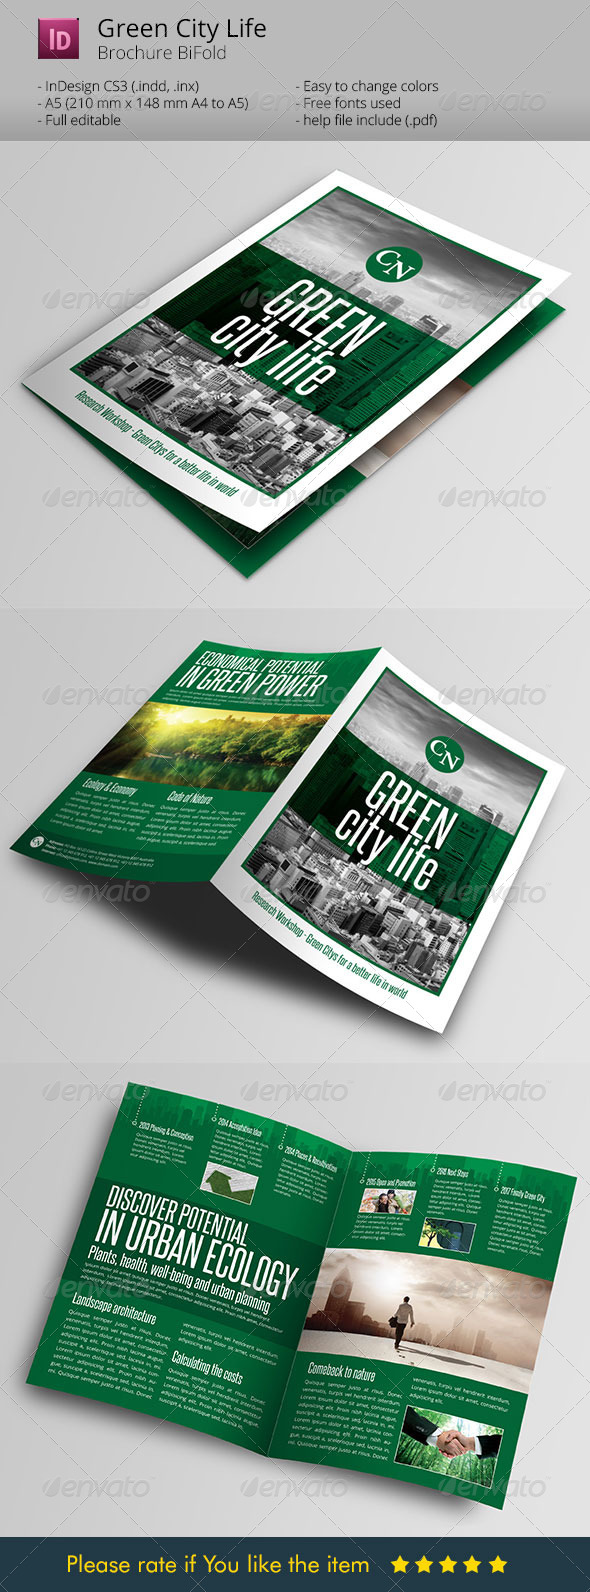 Green City Life Brochure Indesign Template - Informational Brochures